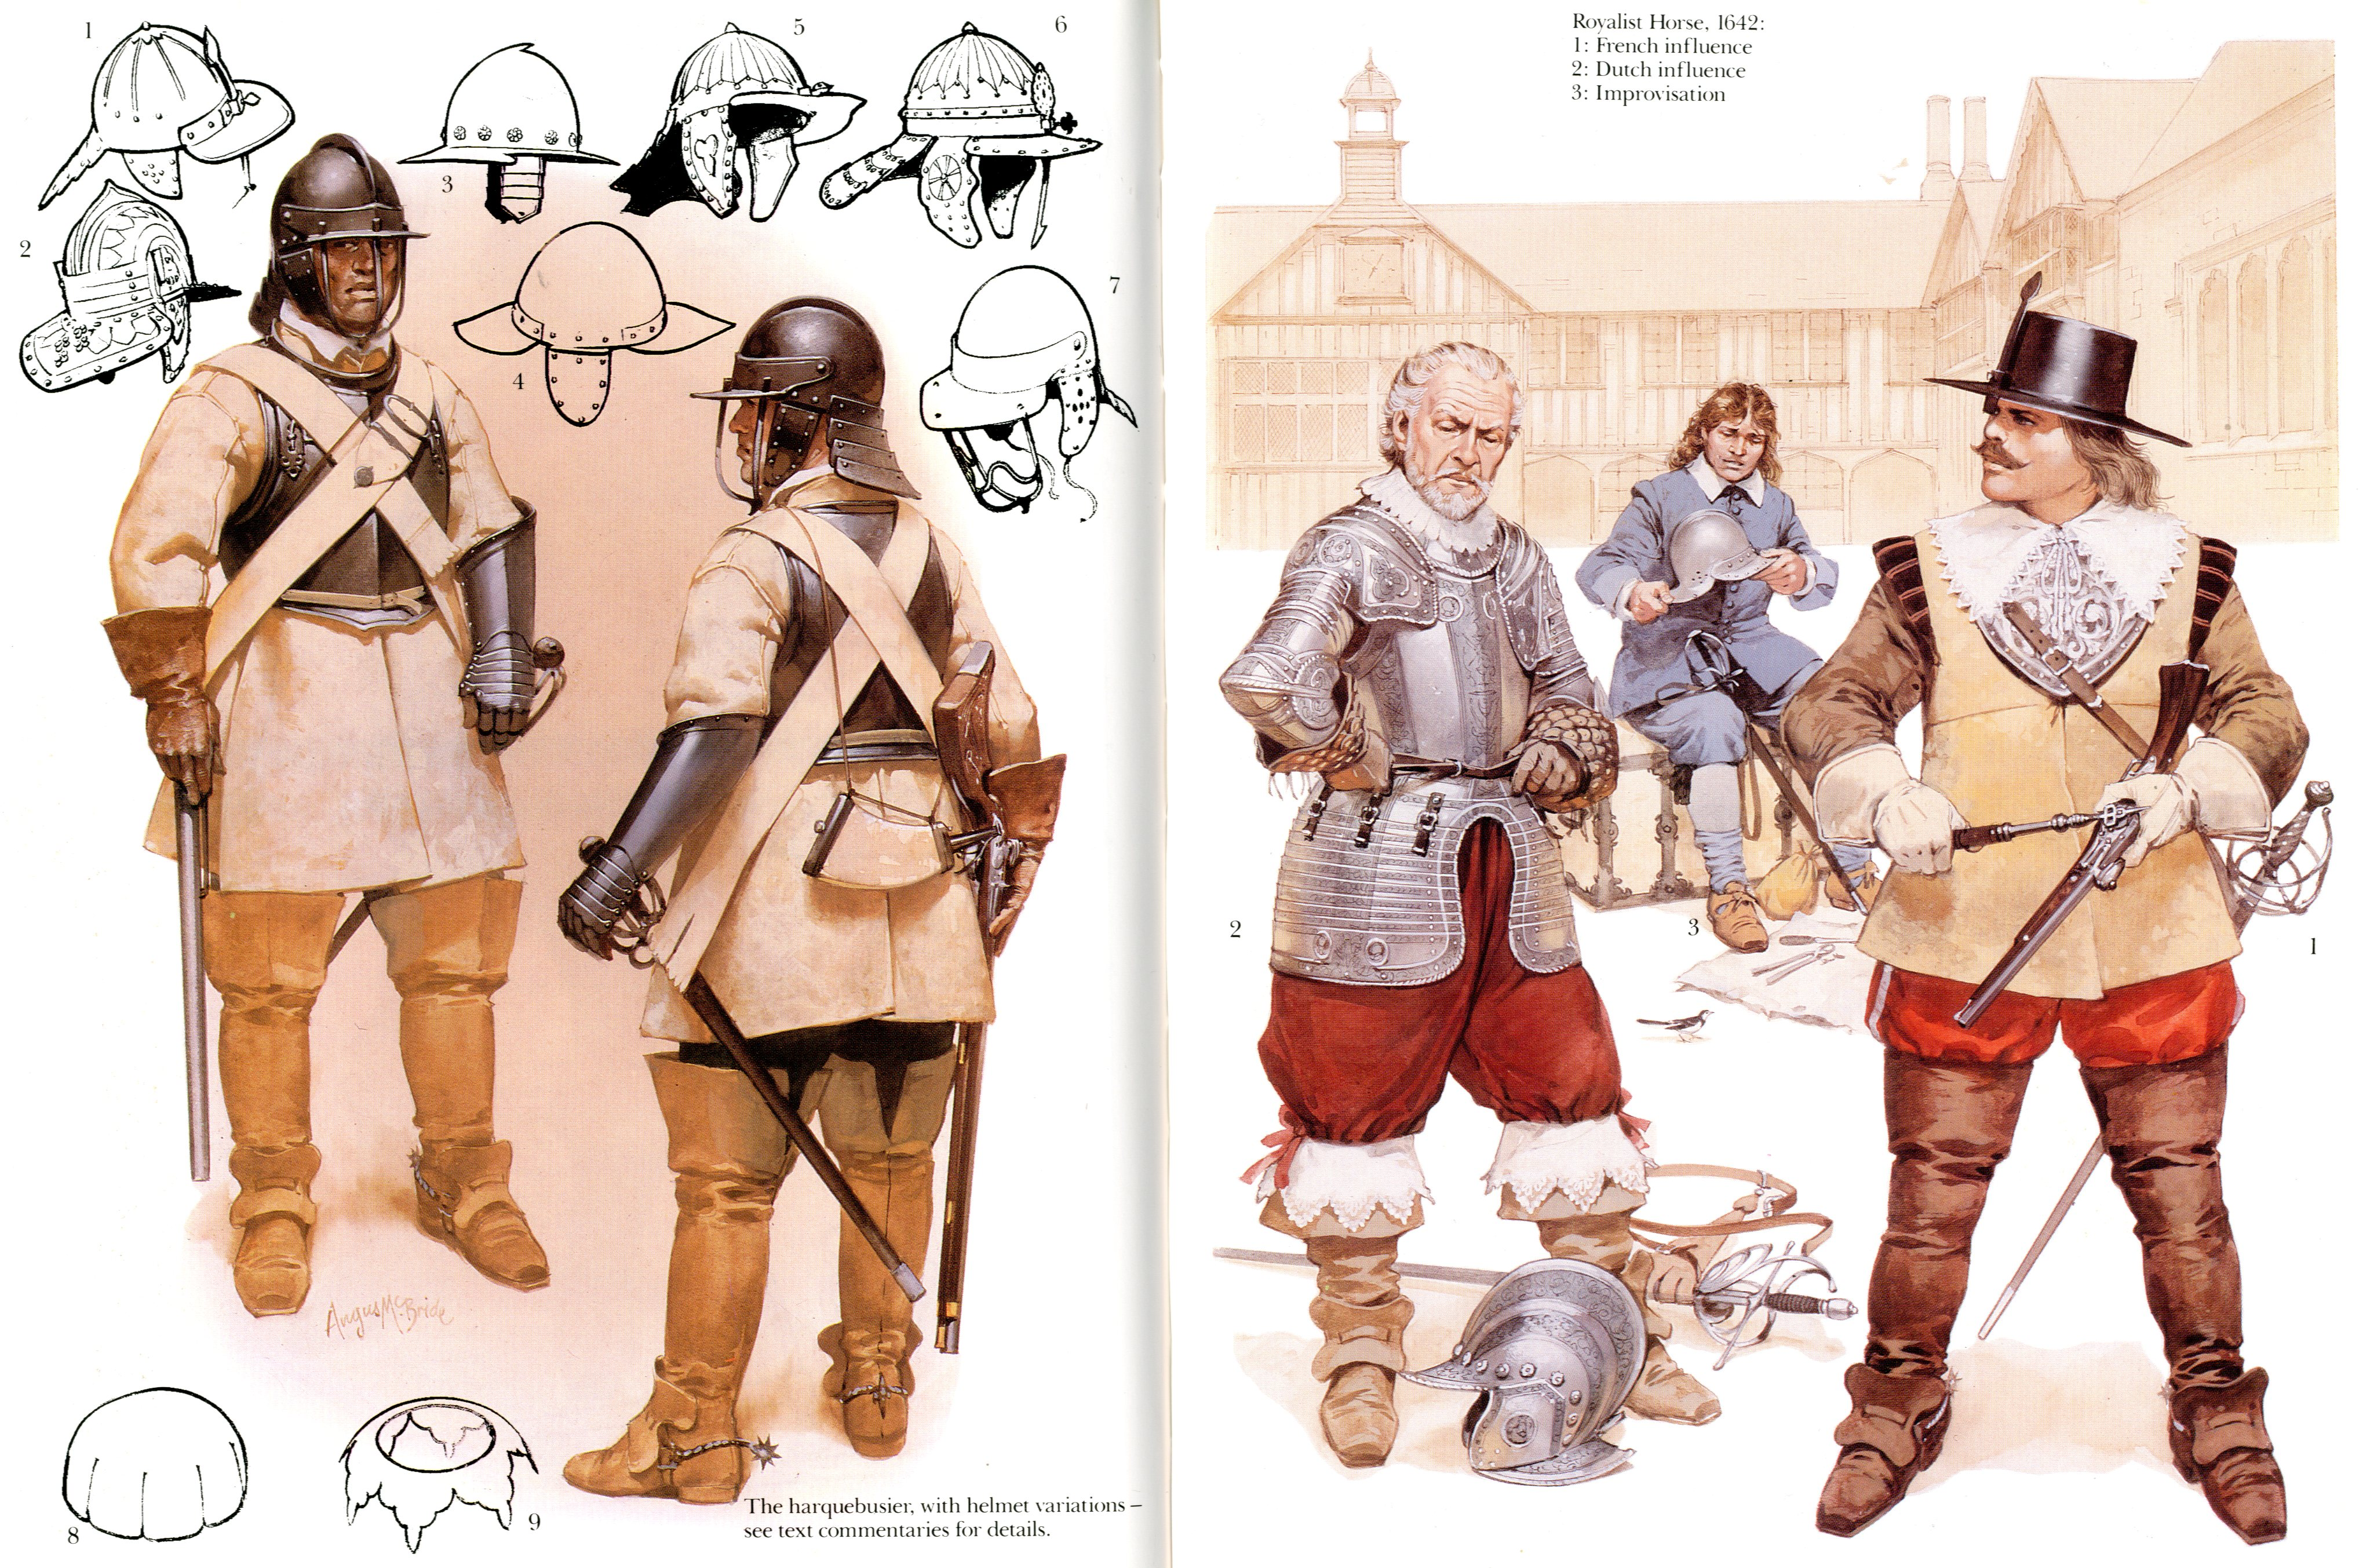 roundheads and cavaliers